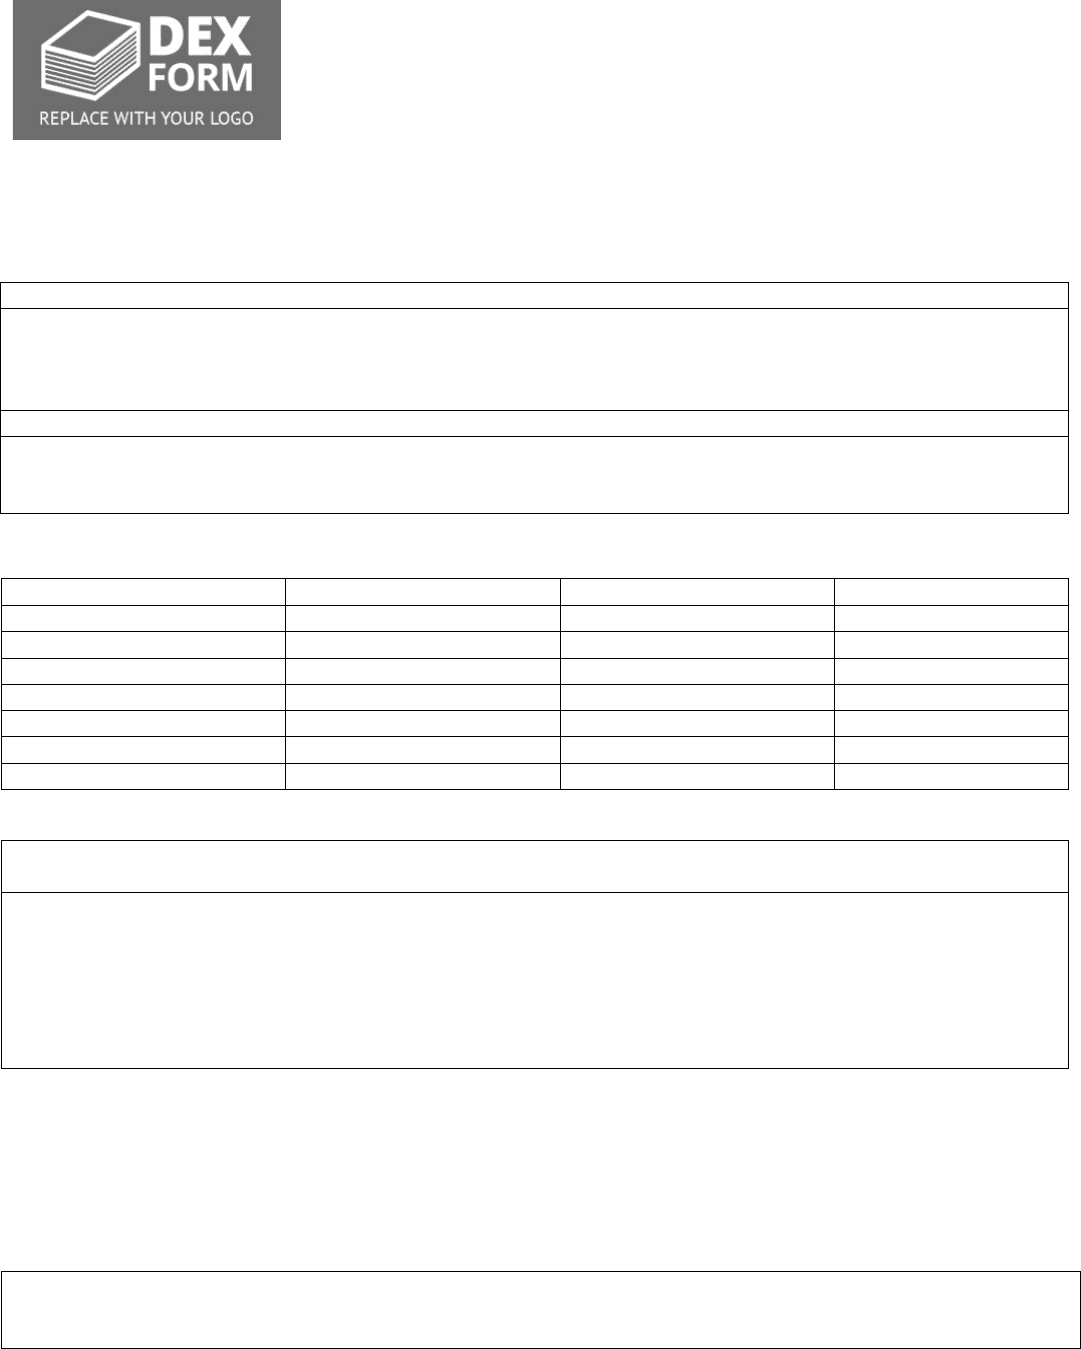 Theatre booking form